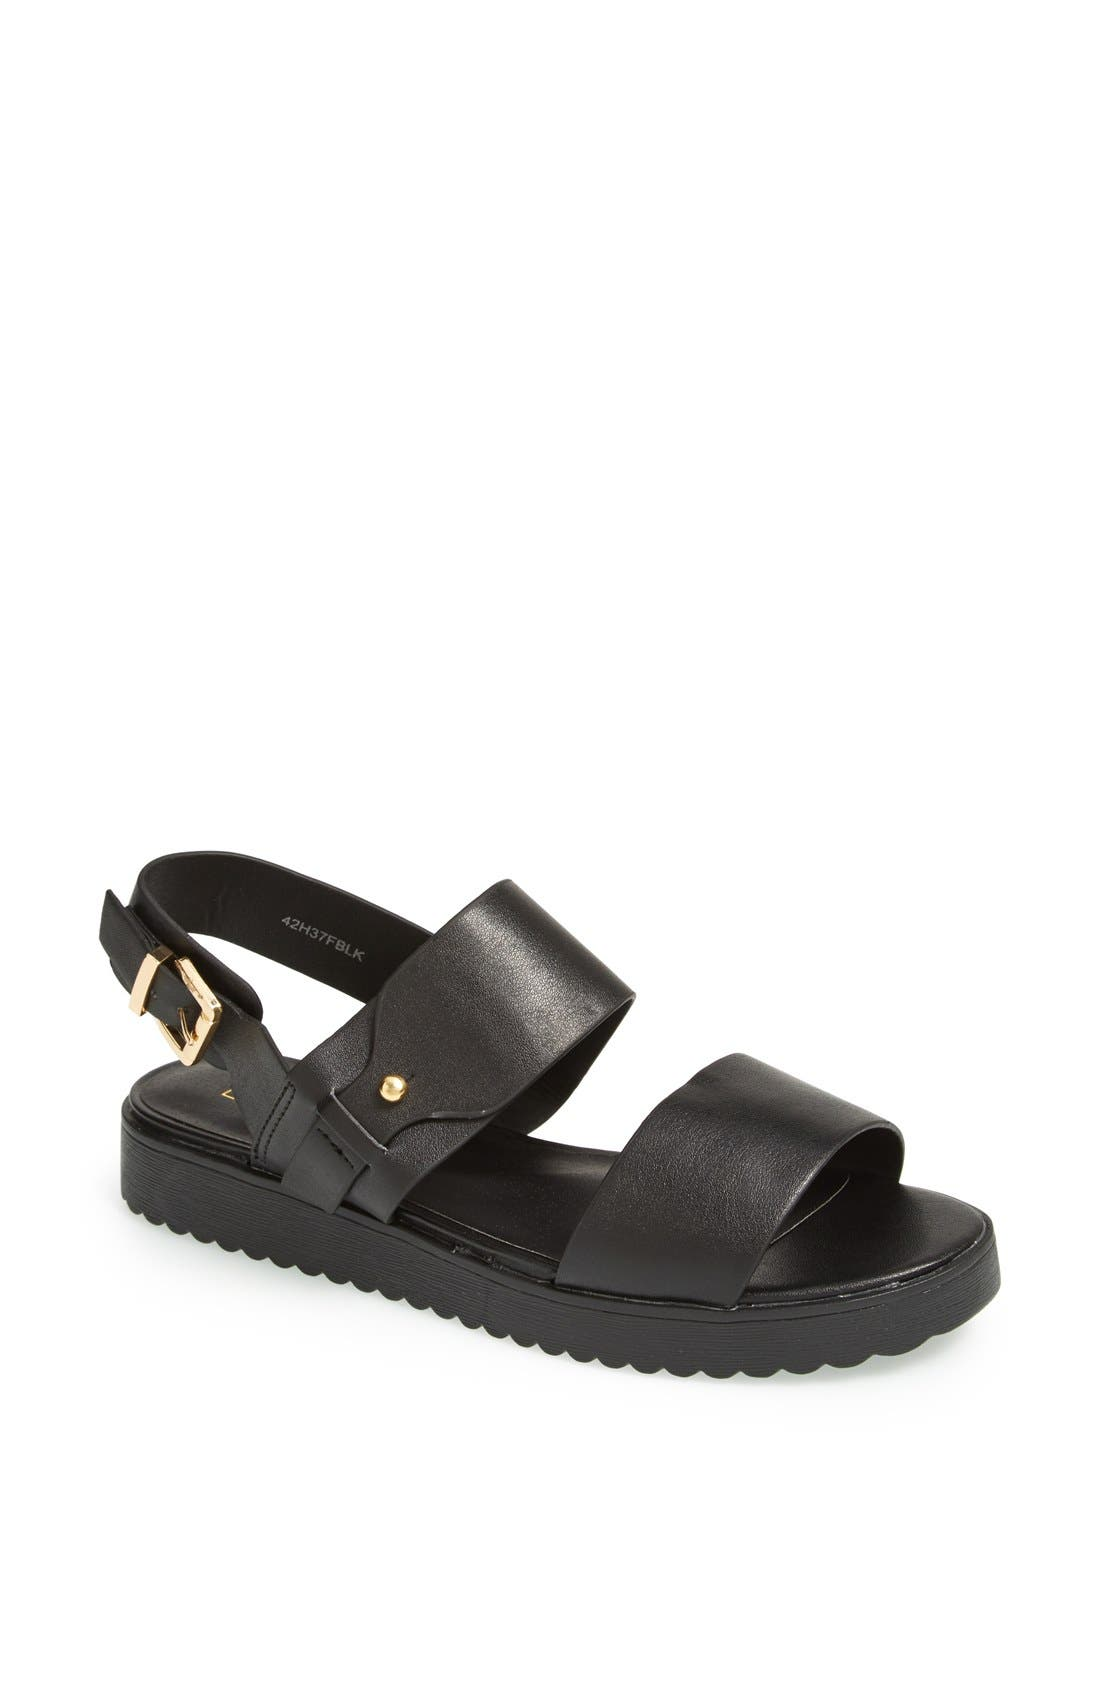 'Hydrate' Faux Leather Sandals,                         Main,                         color, Black